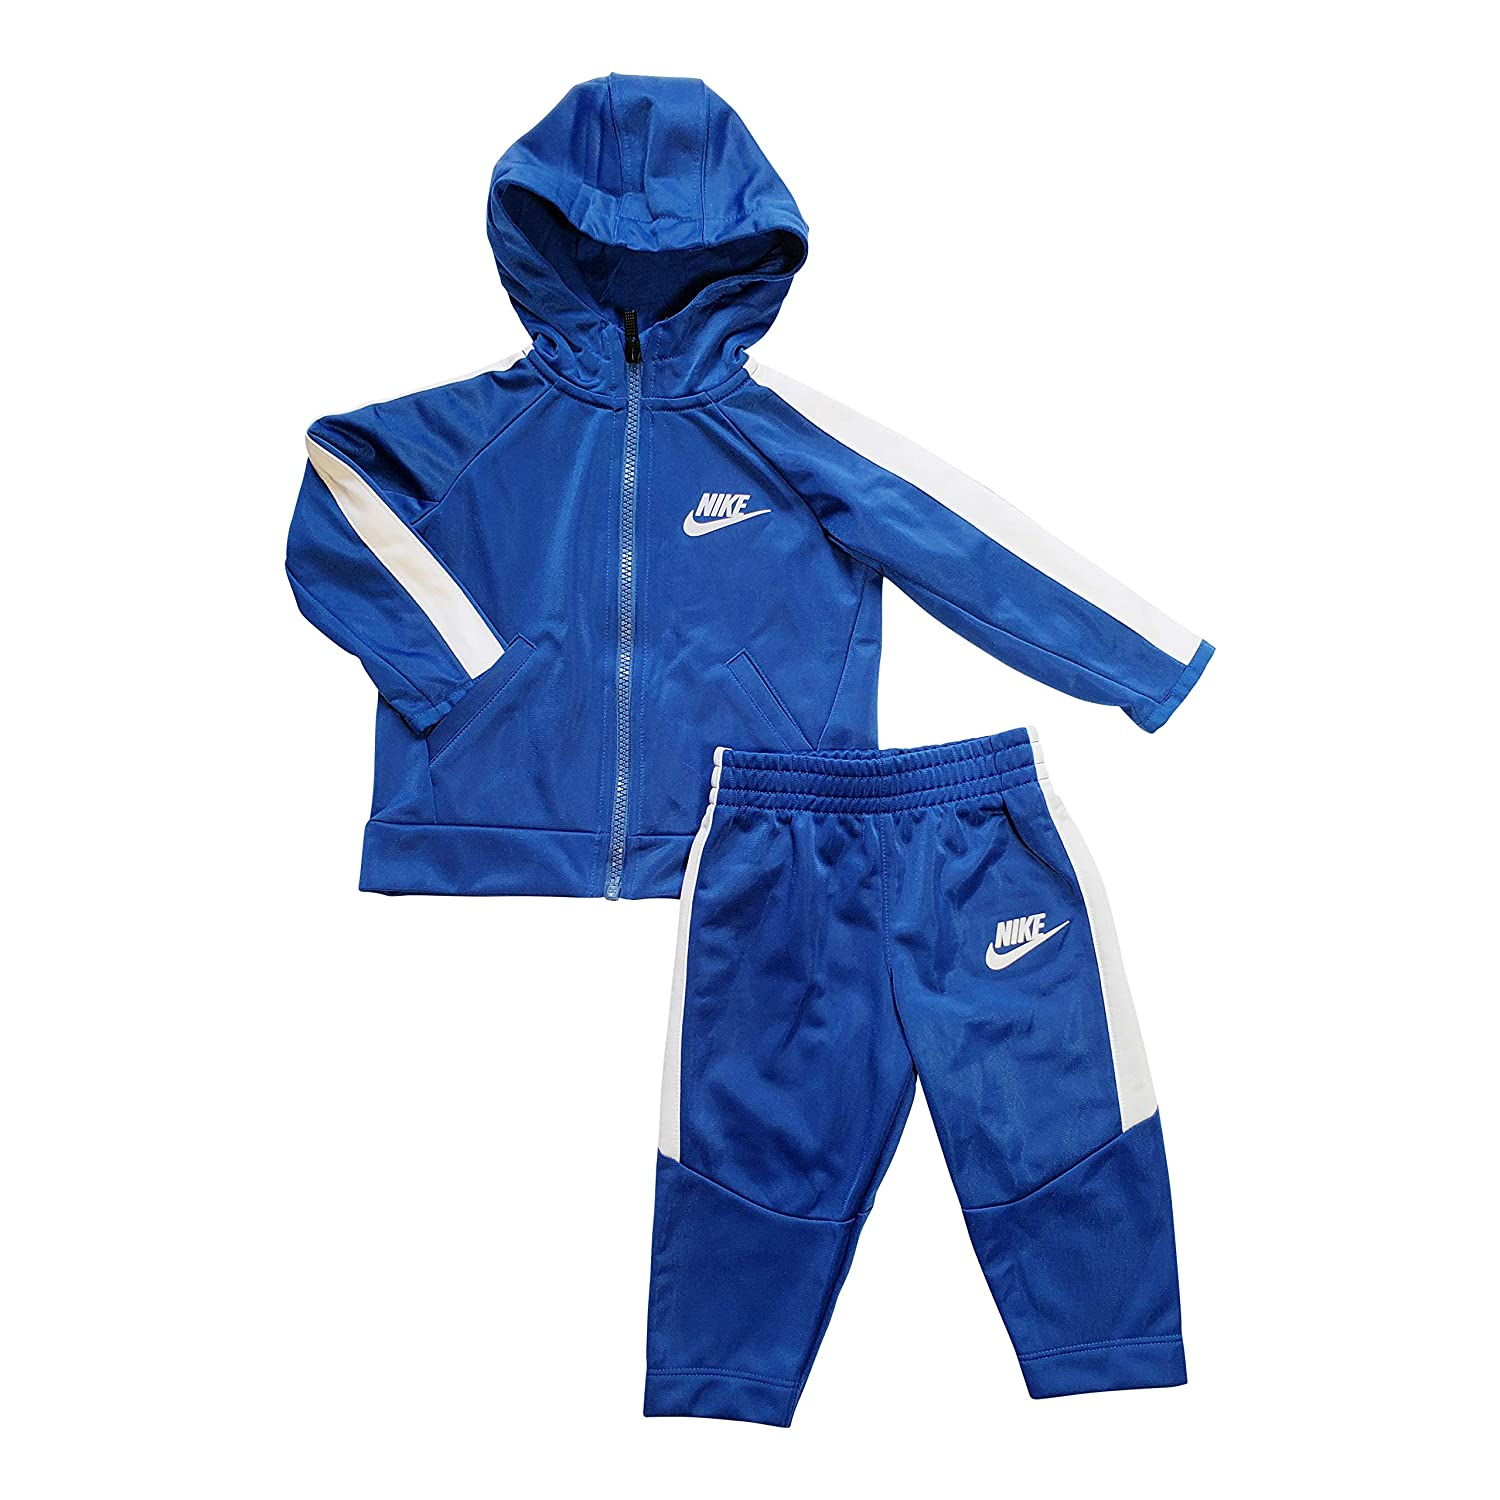 Nike Baby Boys Hooded Tracksuit, 2 Piece Set 2 Piece Set (Blue 18 Months)